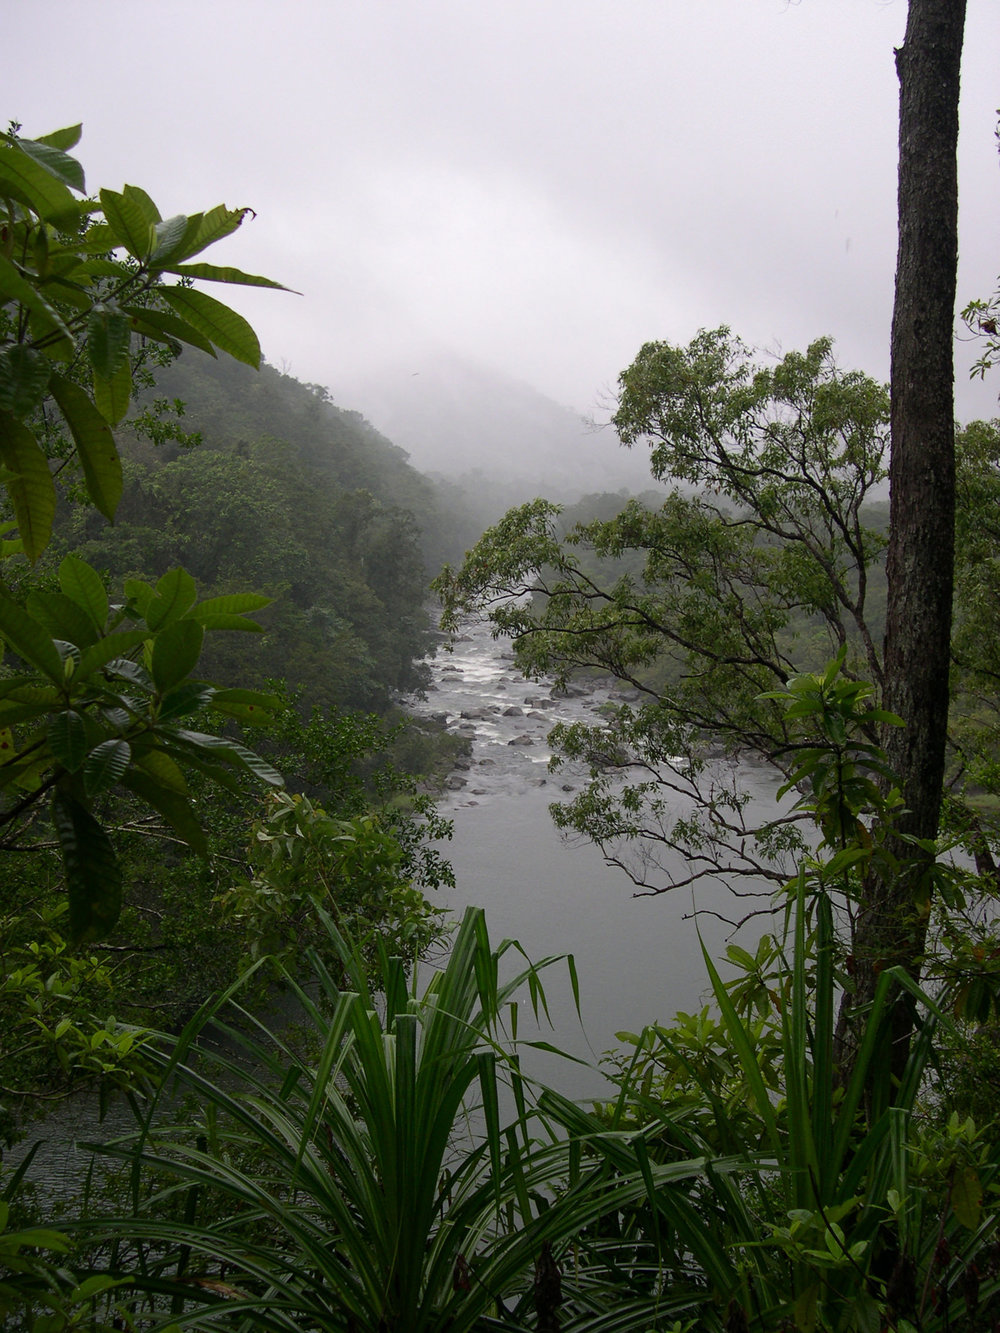 The Tully River, Girrigun in Far North Queensland. Photo courtesy Valerie Keenan.